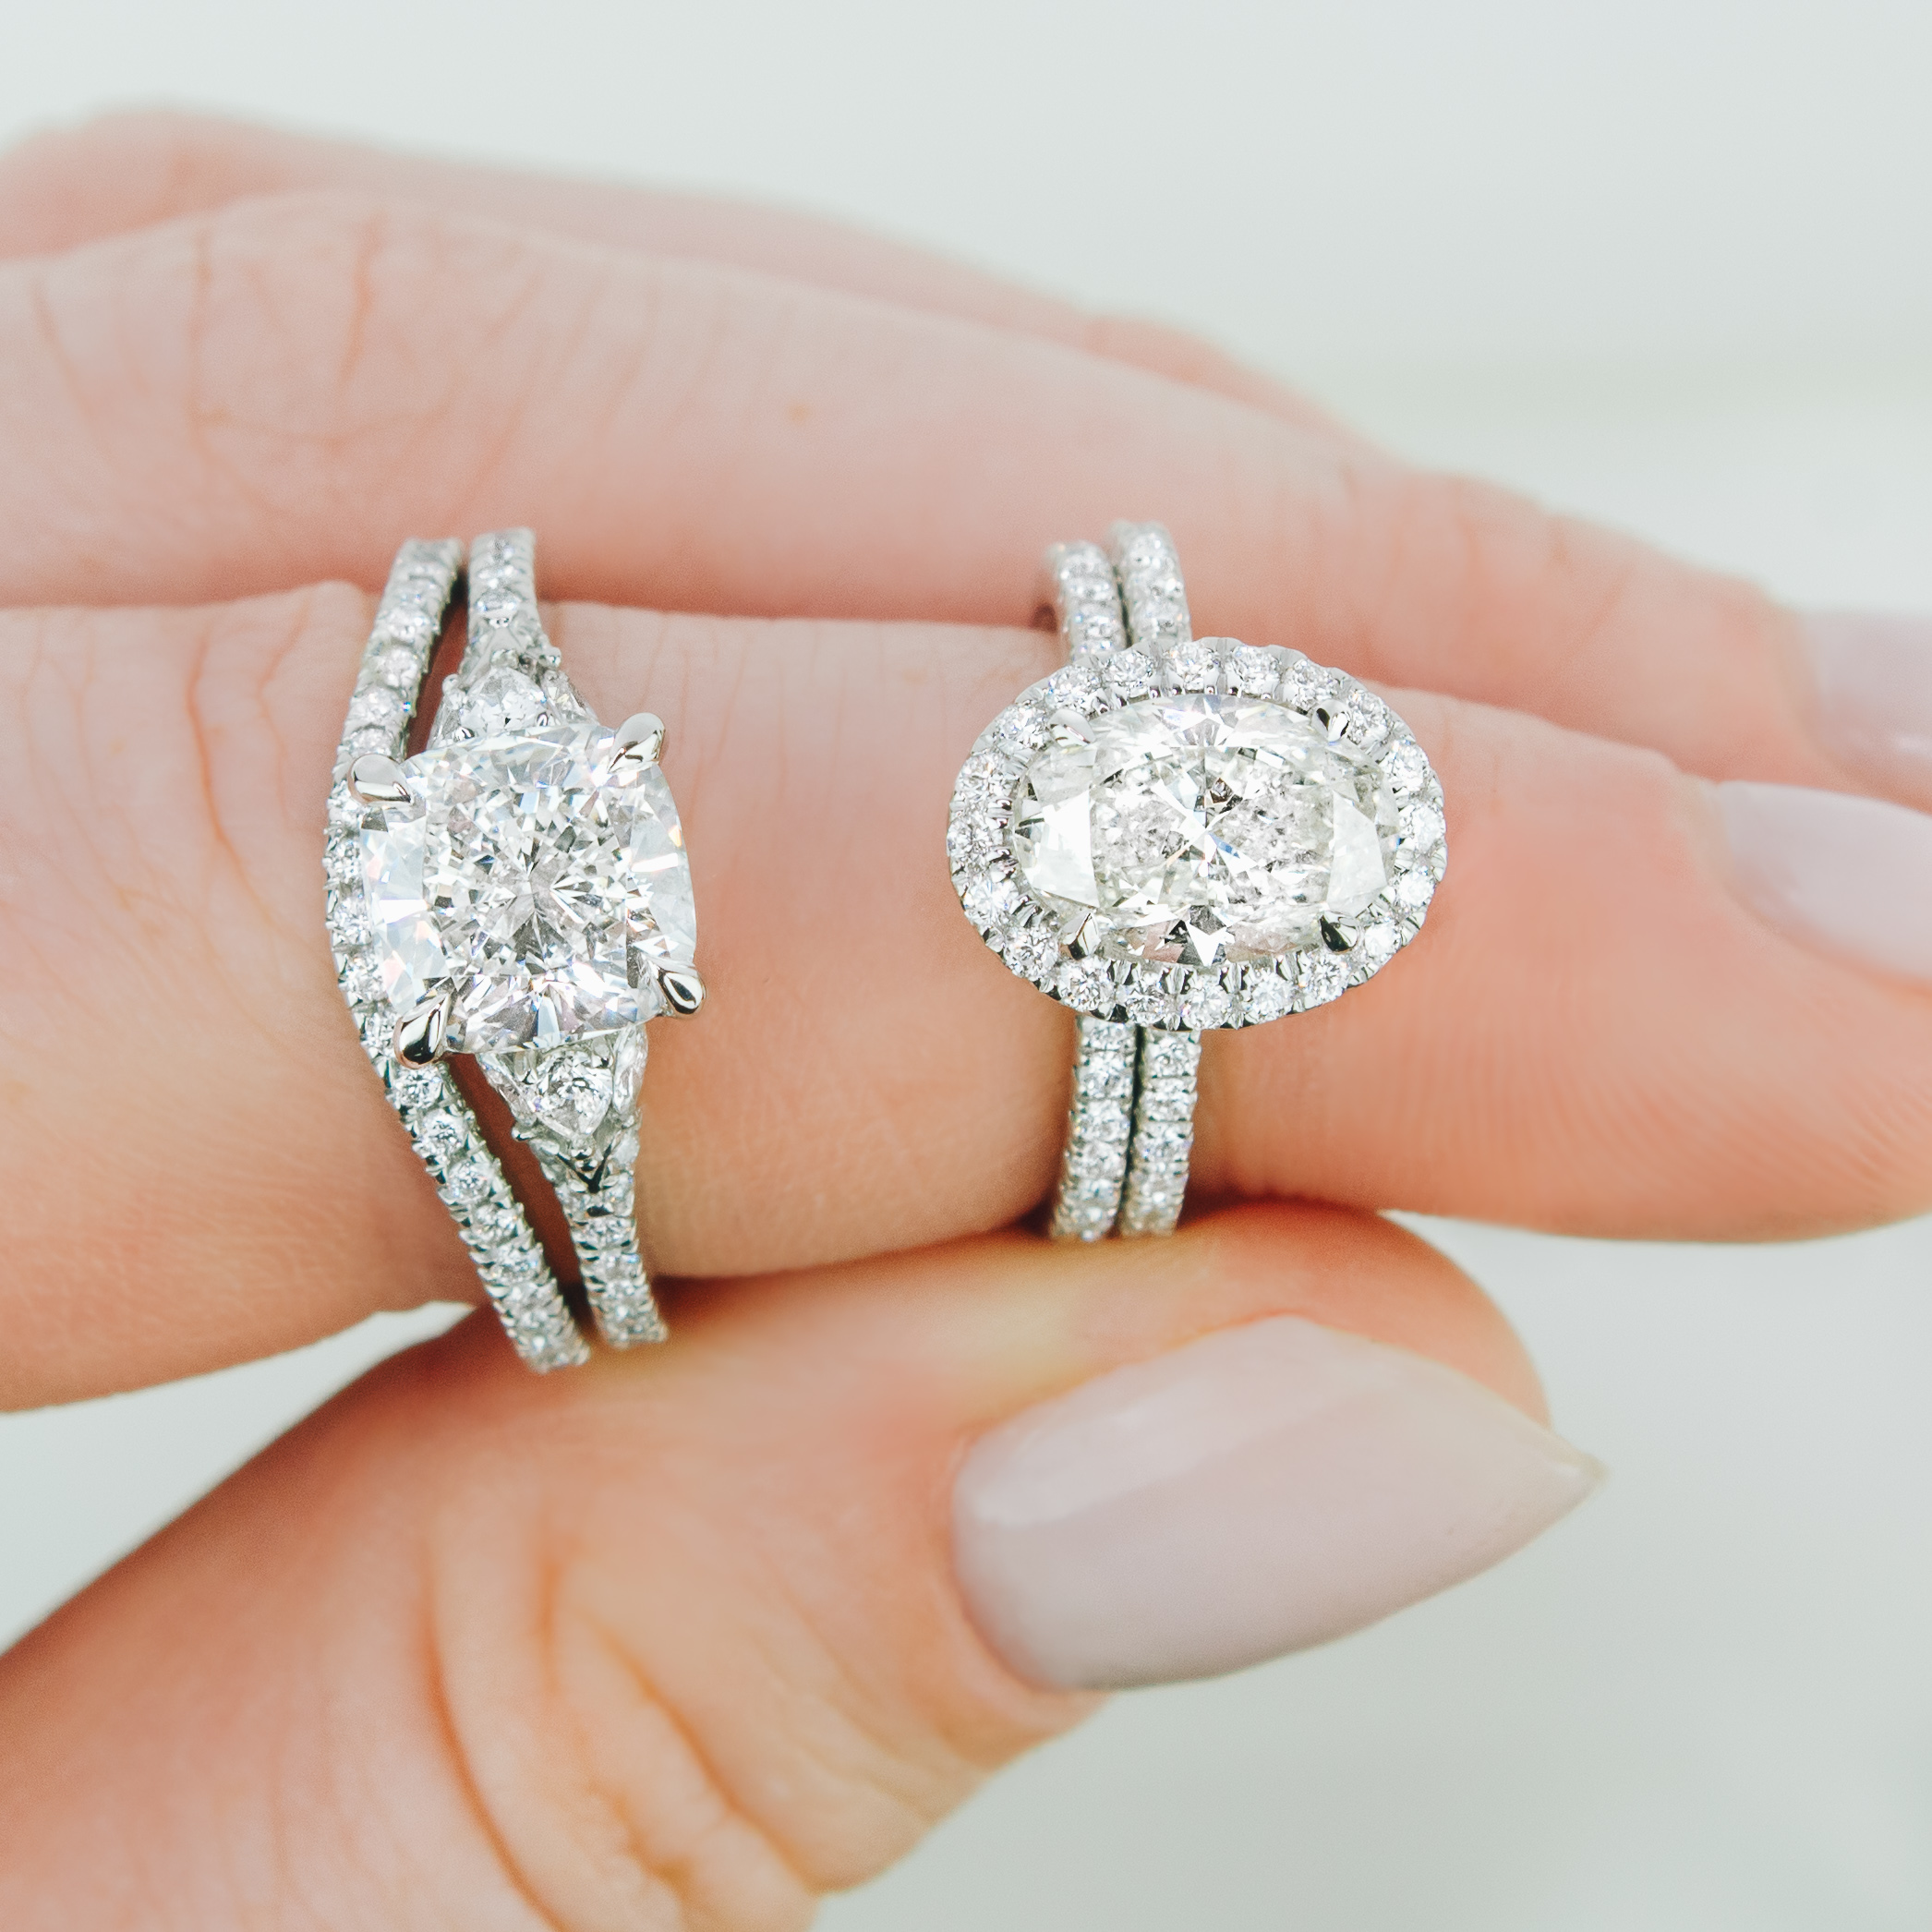 Unique Engagement Rings With Side Stones